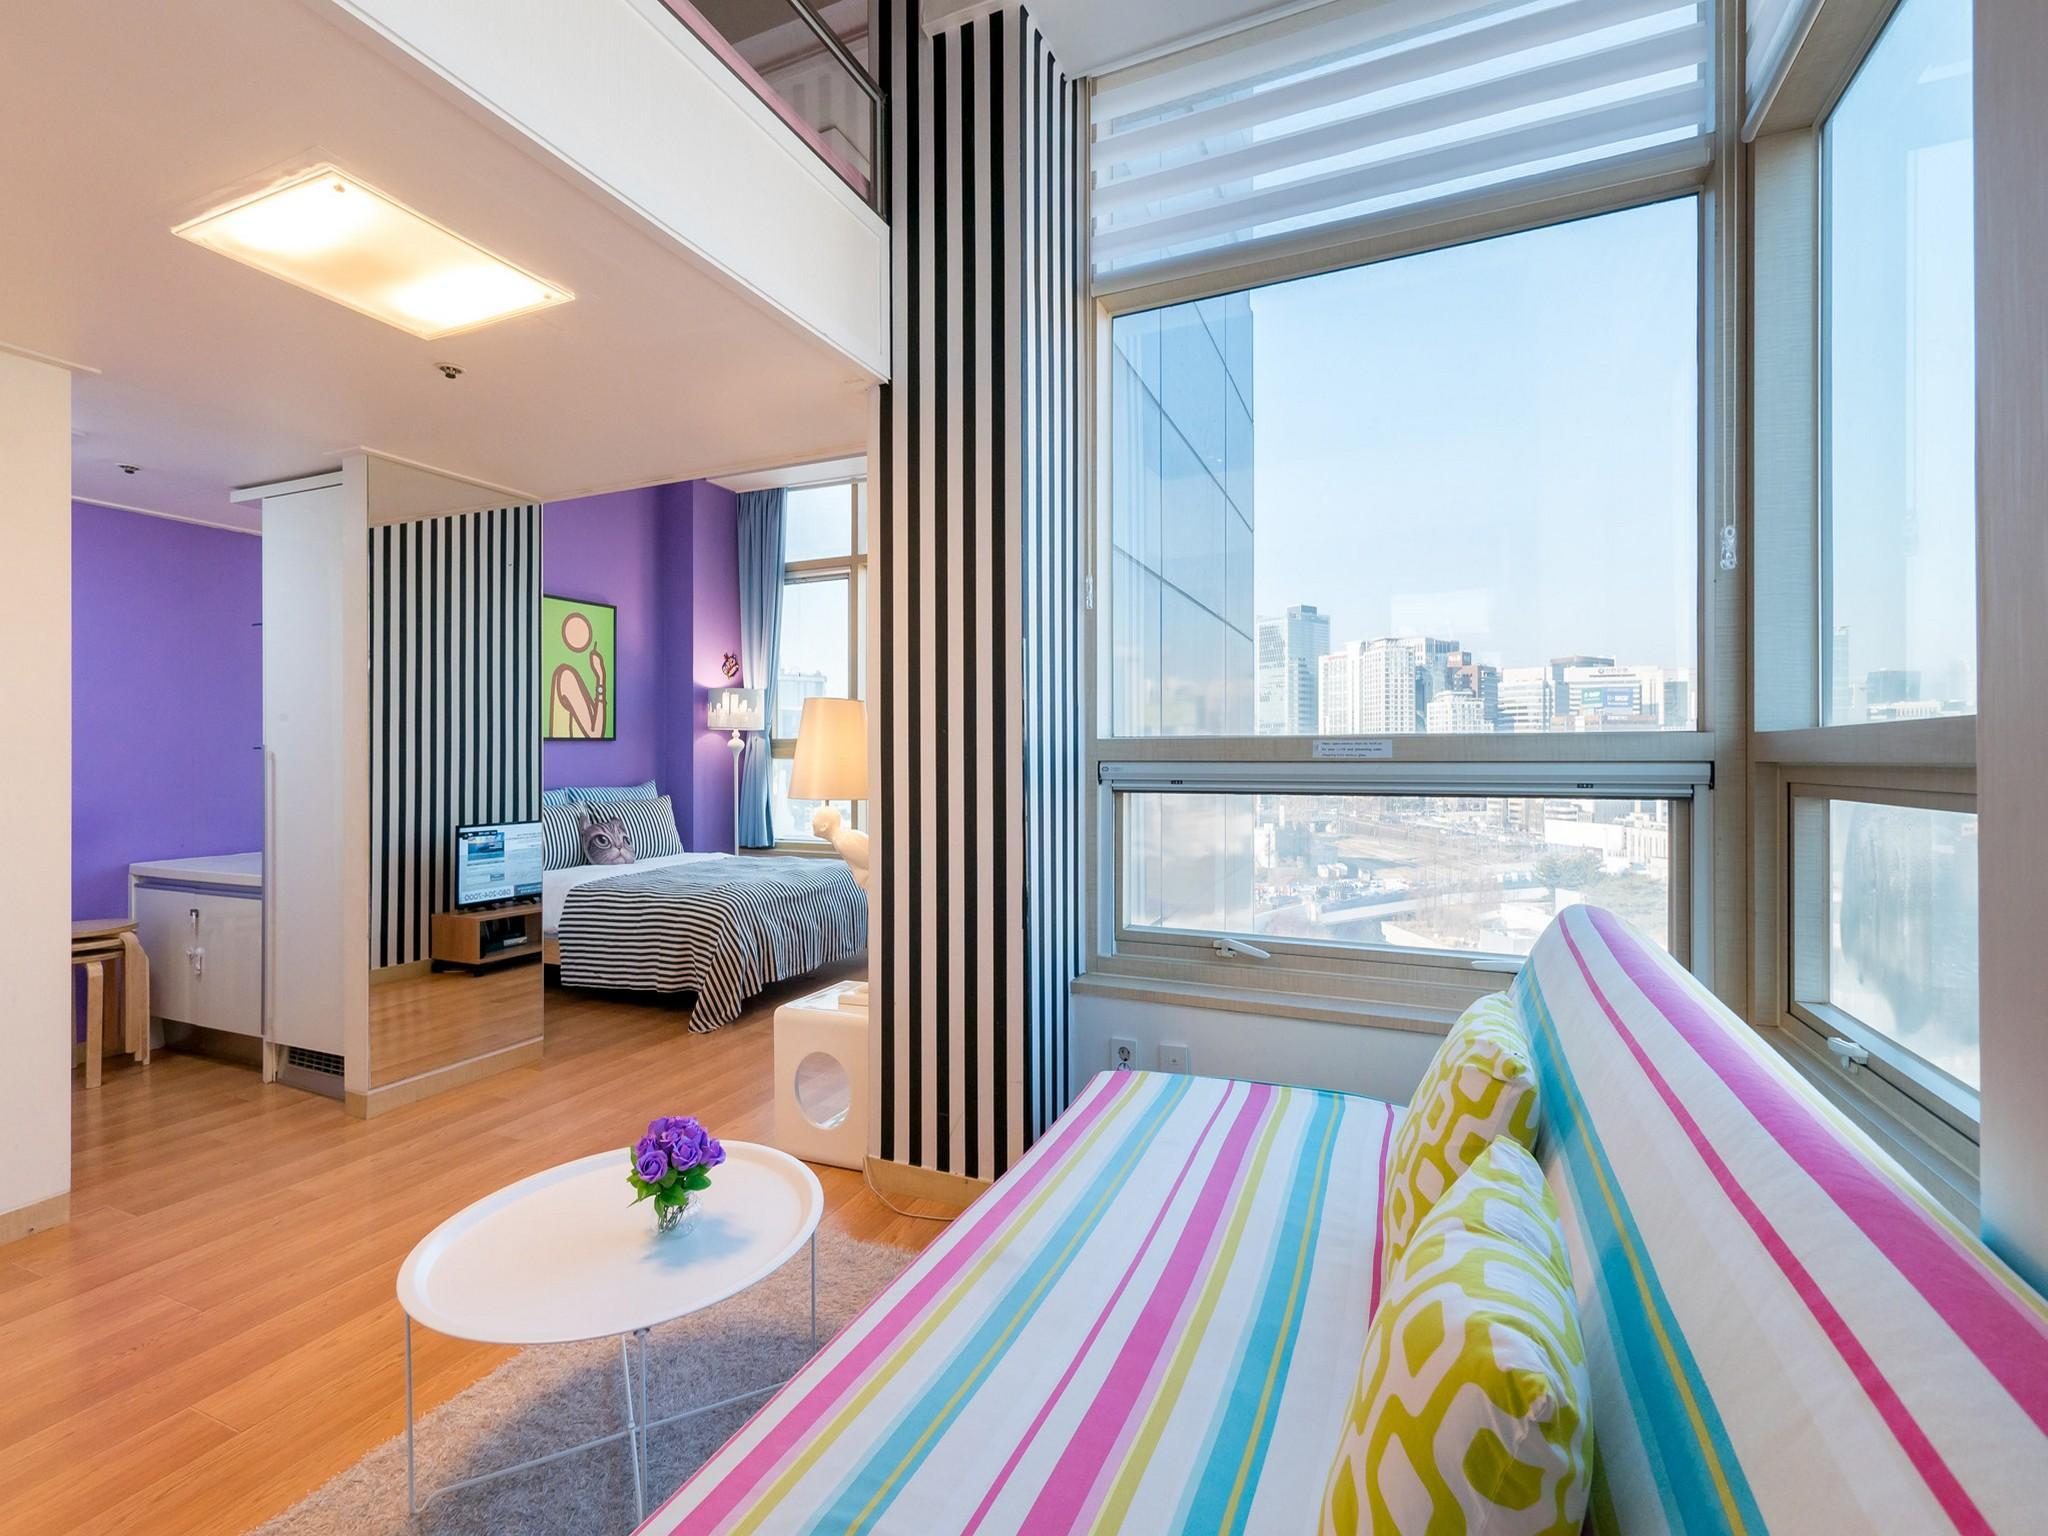 202 House Seoulstation Best Price On J House Seoul Station In Seoul Reviews